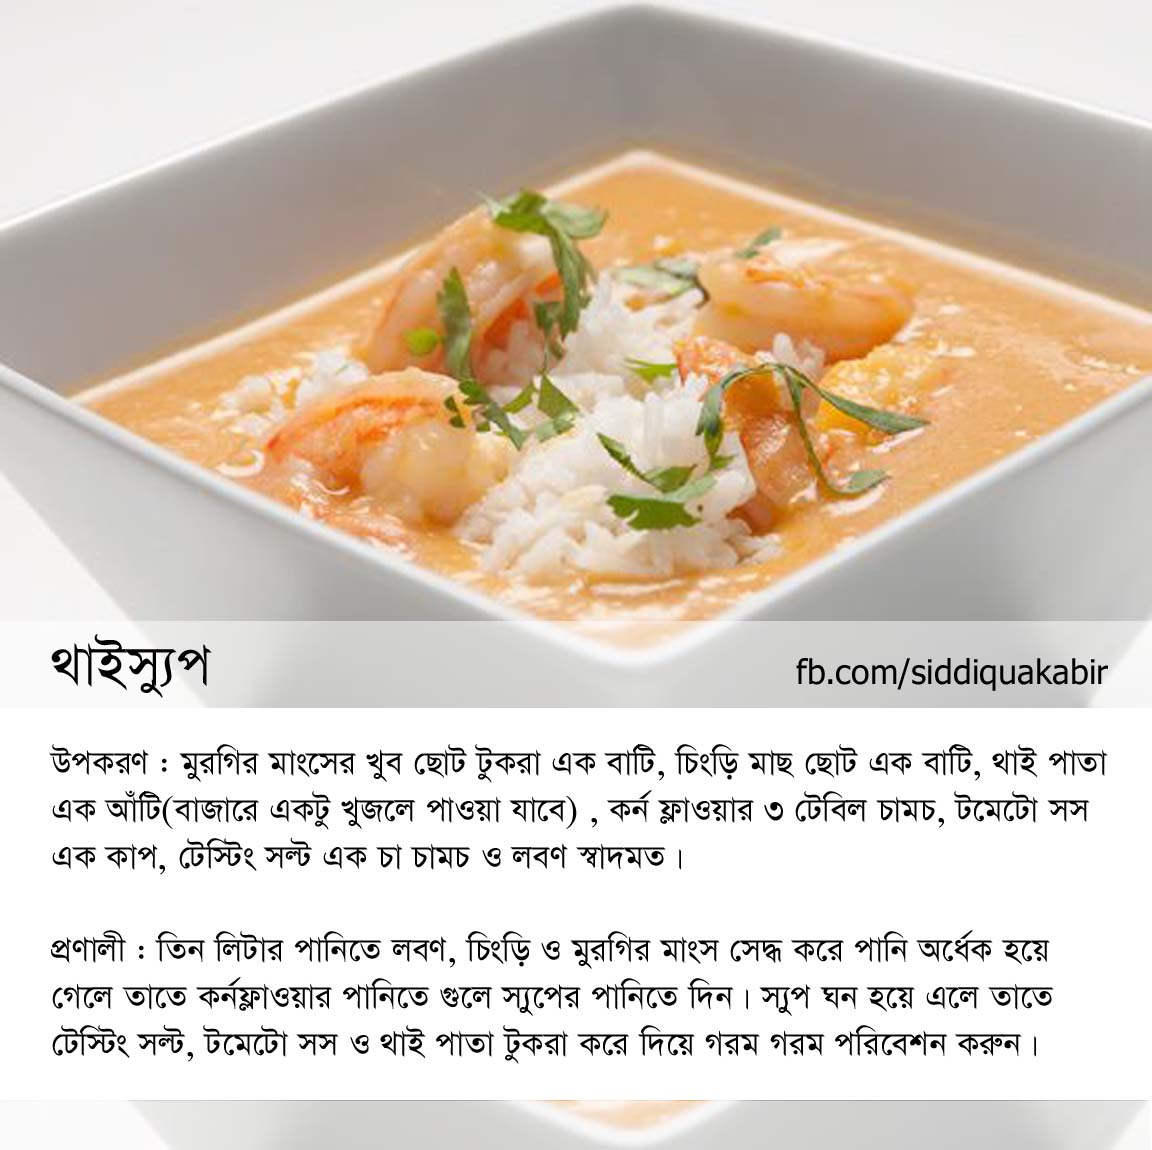 Cooking recipes book in bengali pdf full hd pictures 4k ultra ebooks all types august bengali recipe book nana swader haluya pdf download bengali food recipes pdf download bangla recipe book apk download android forumfinder Gallery